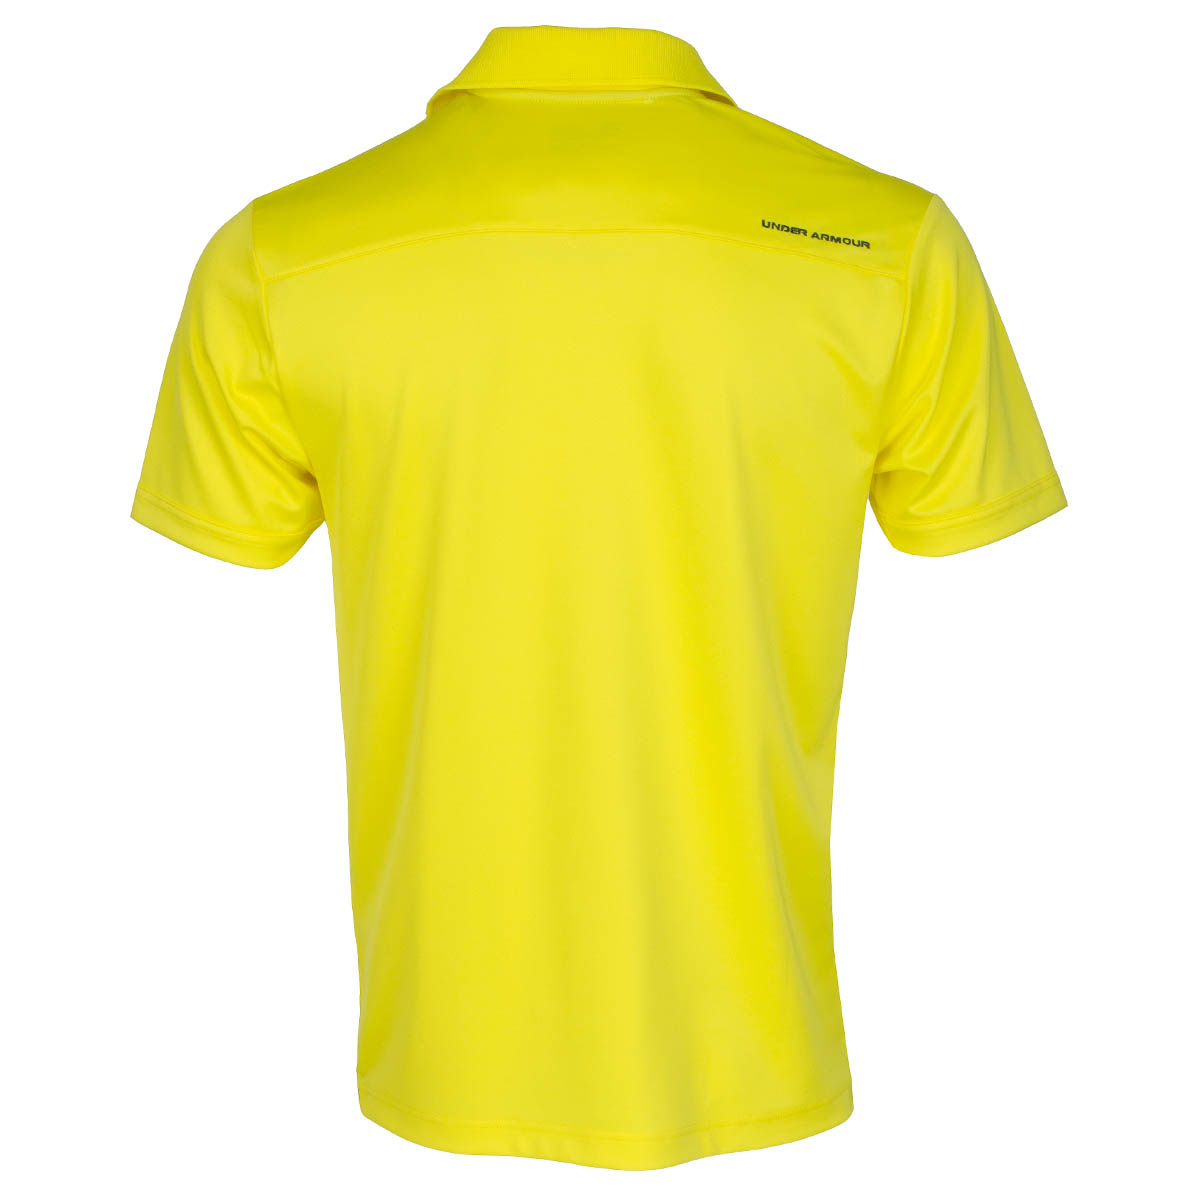 Under Armour Performance Polo Shirt Sunbleached Stealth